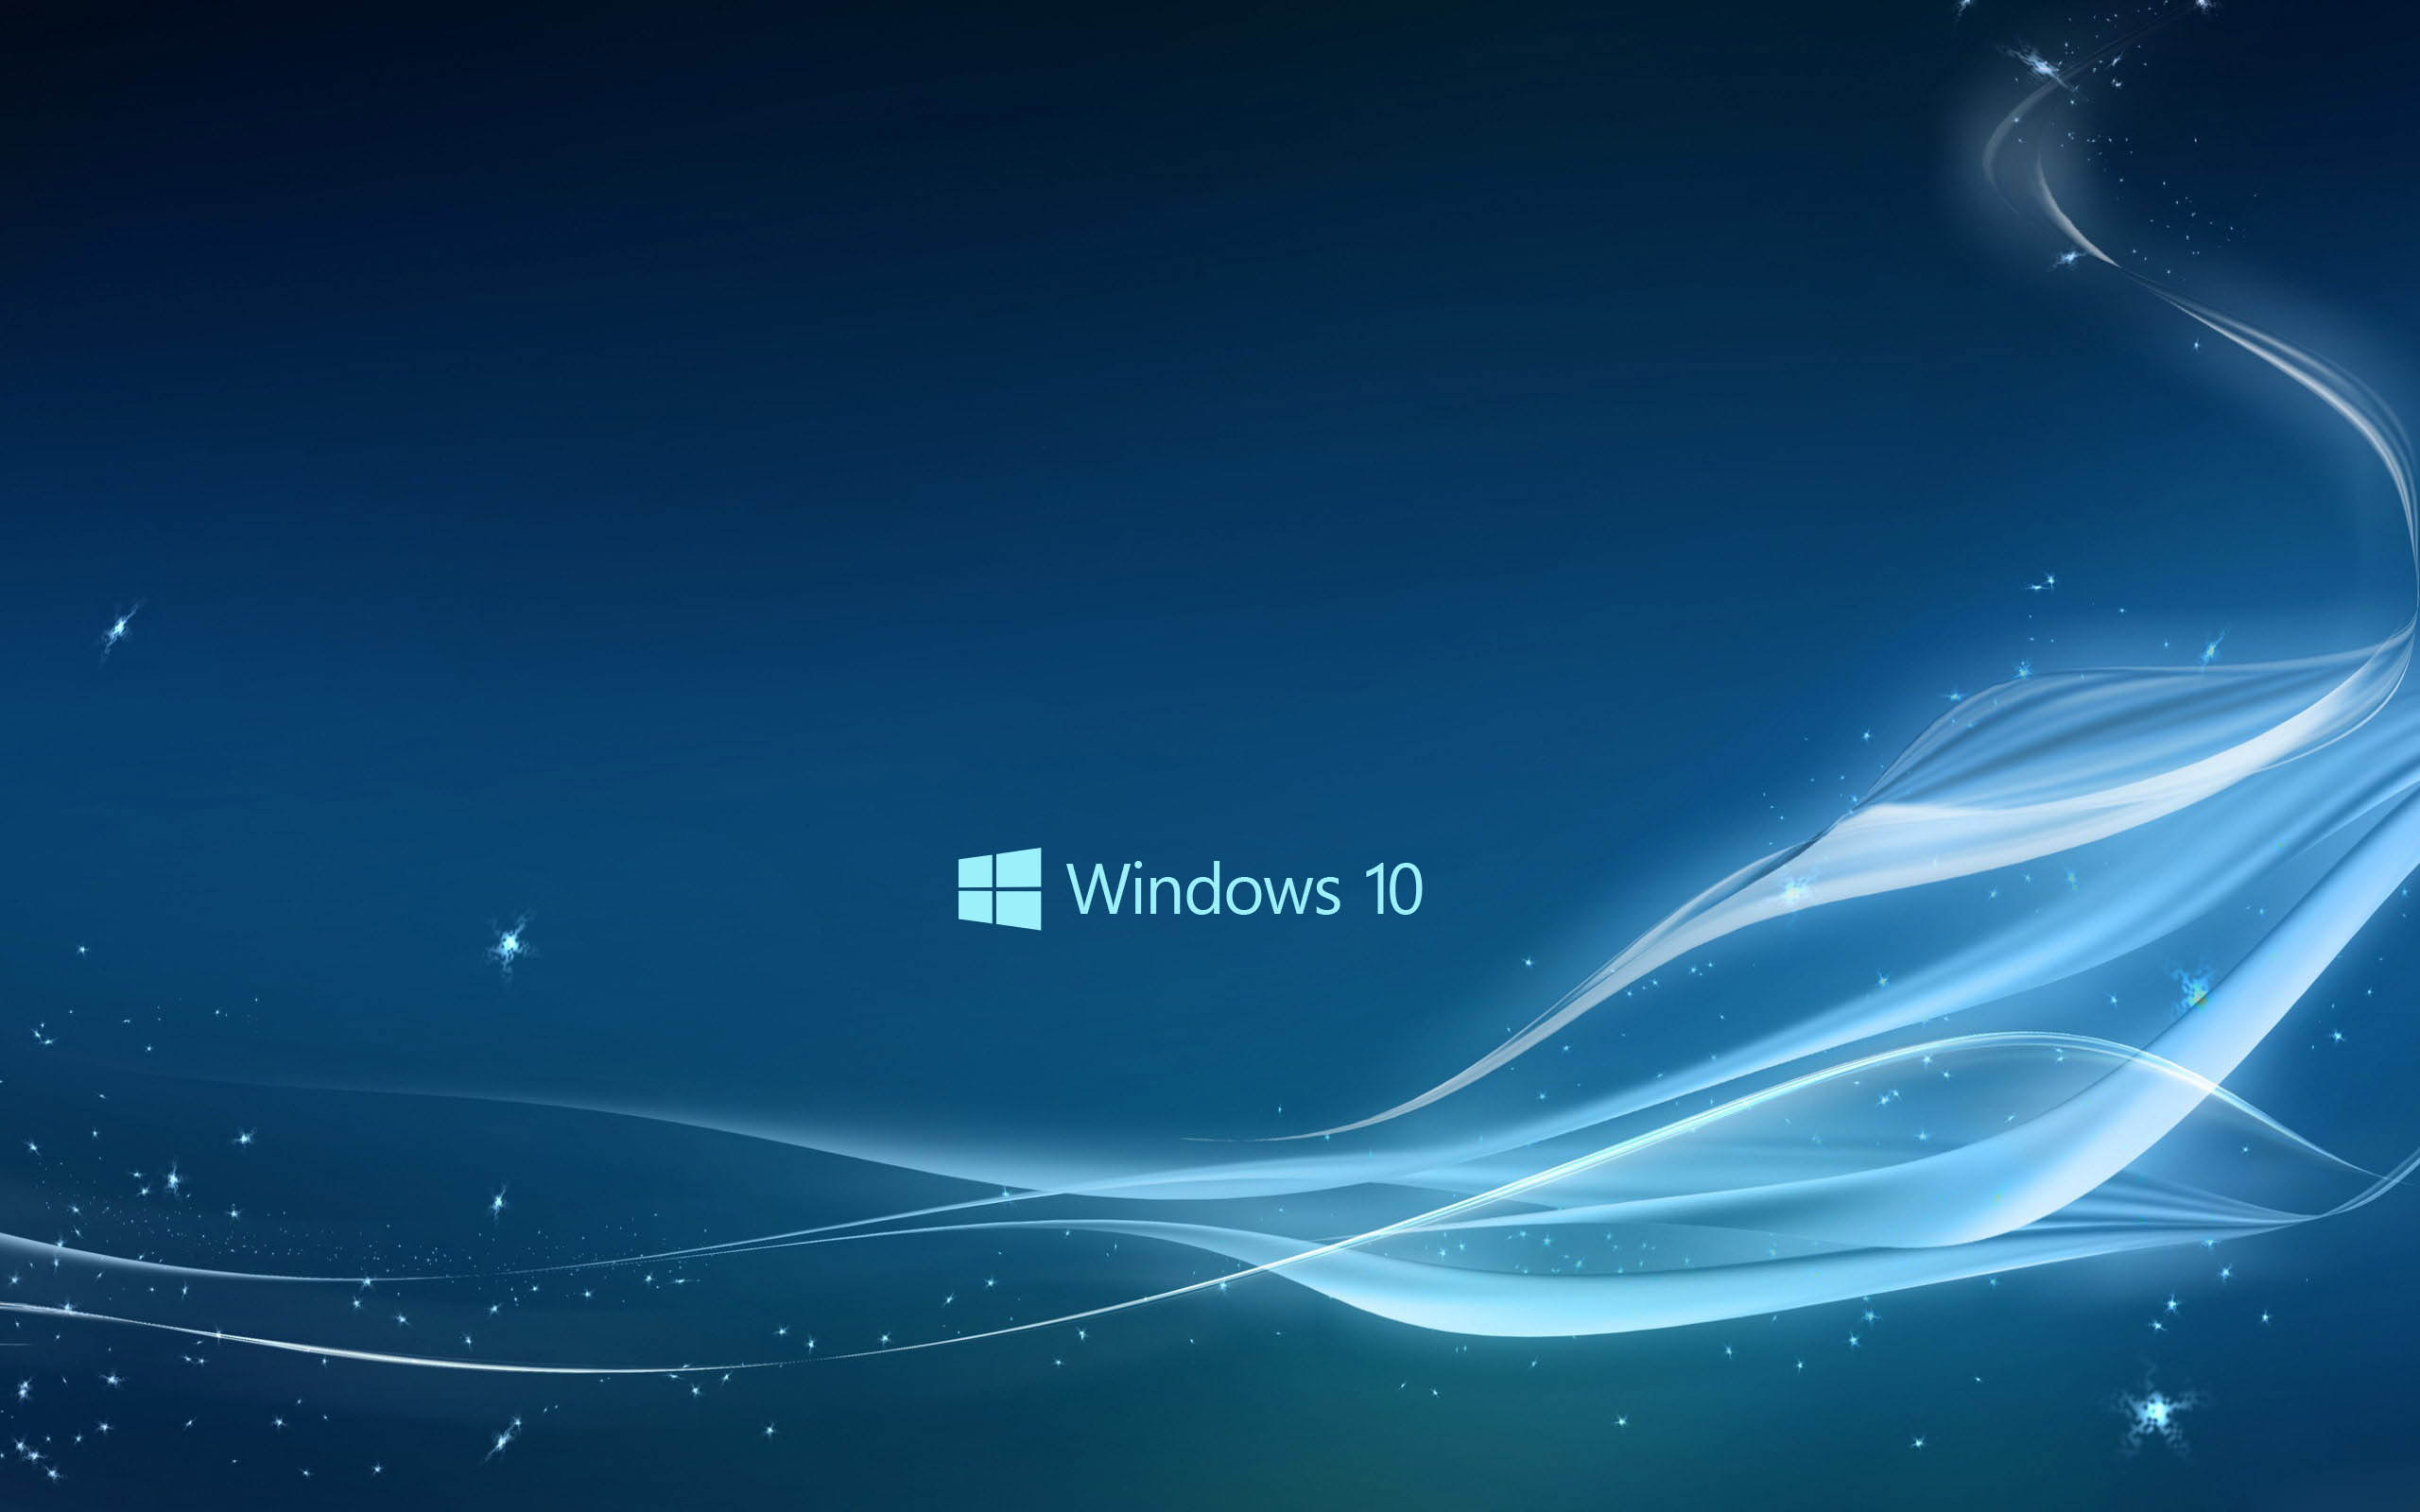 Windows 10 Wallpaper Wallpaper